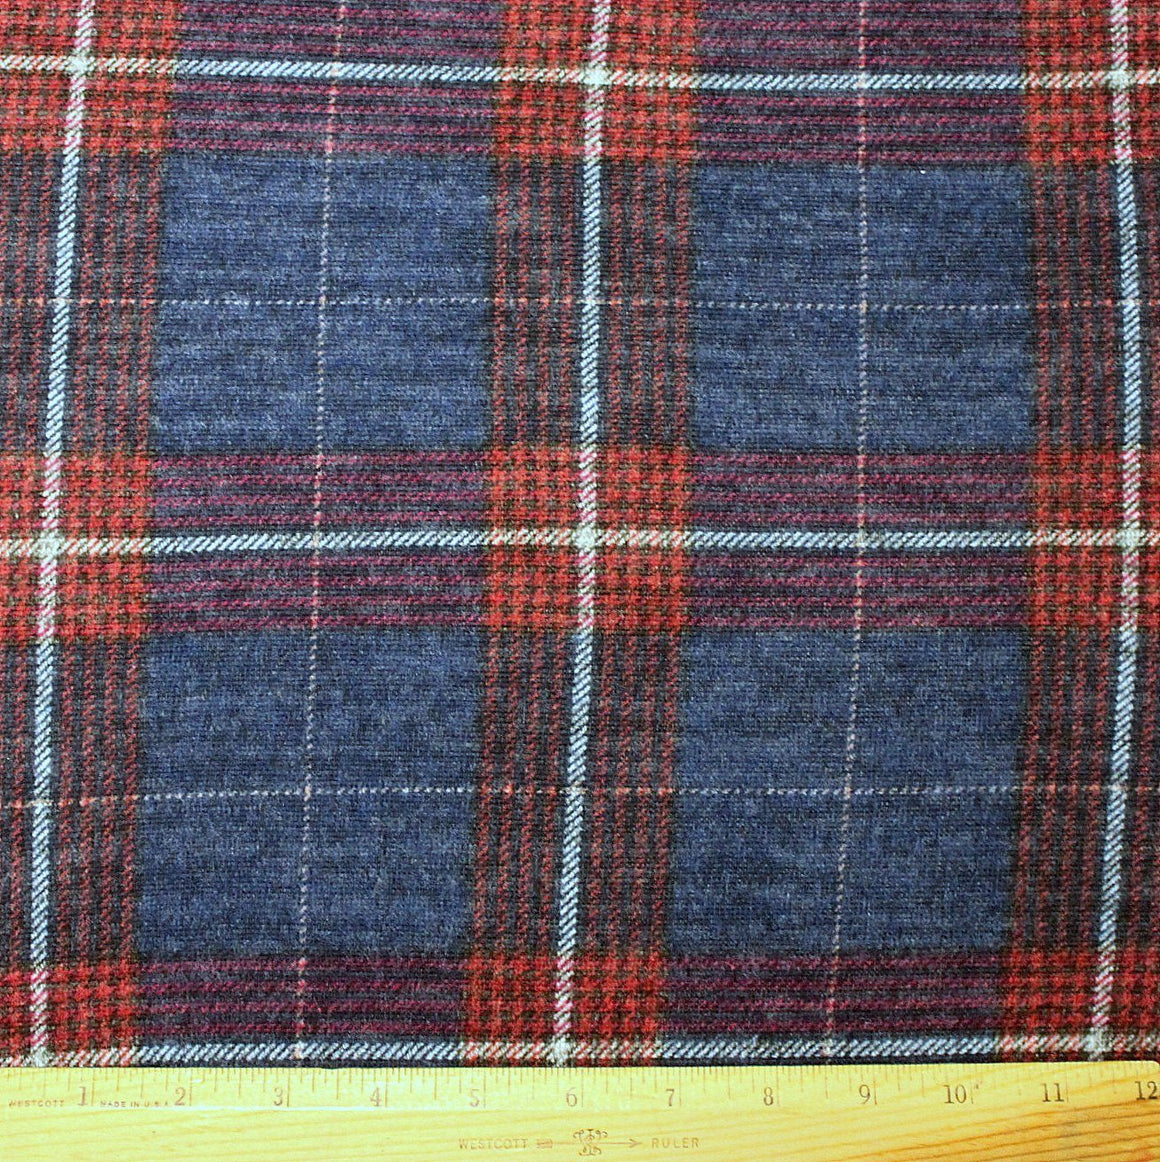 Navy Burgundy Red and White Plaid Brushed Heathered Hacci Sweater Knit Fabric, 1 Yard